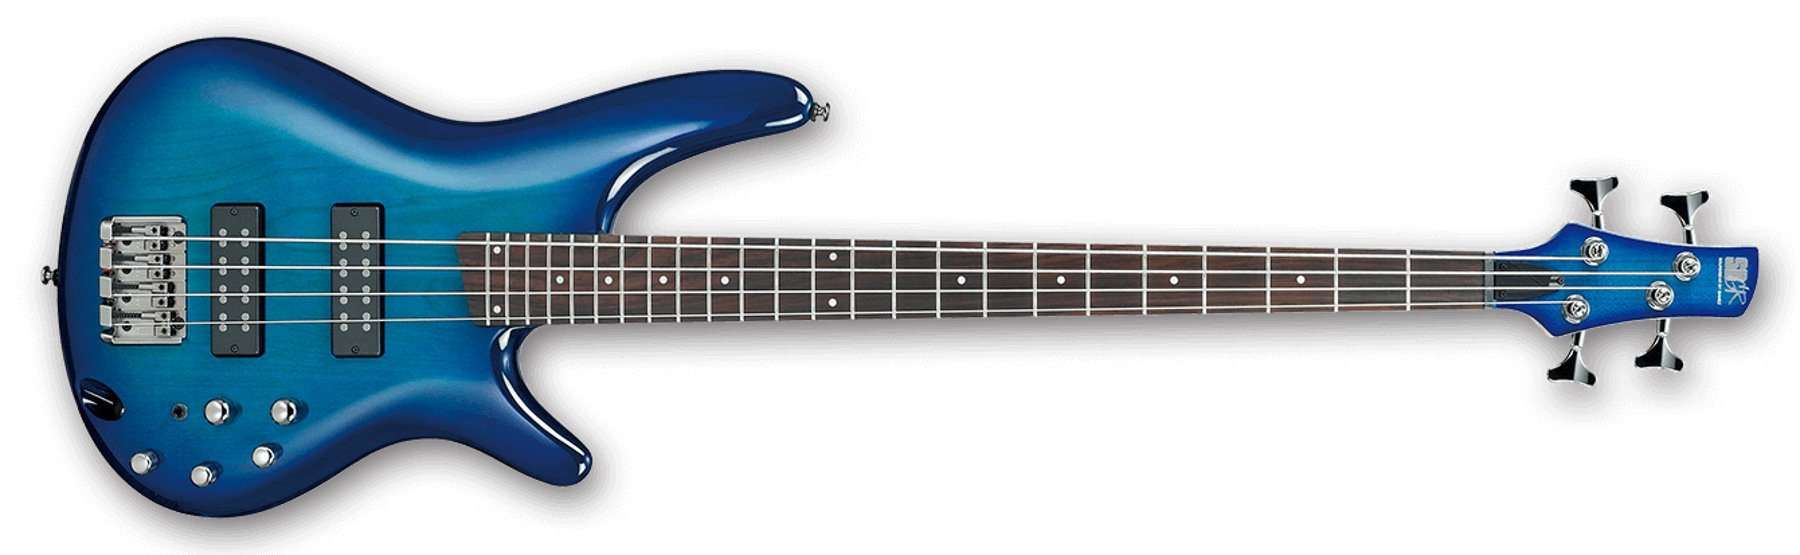 4-String Bass Guitar, 24-Fret, Rosewood Fretboard with White Dot Inlay